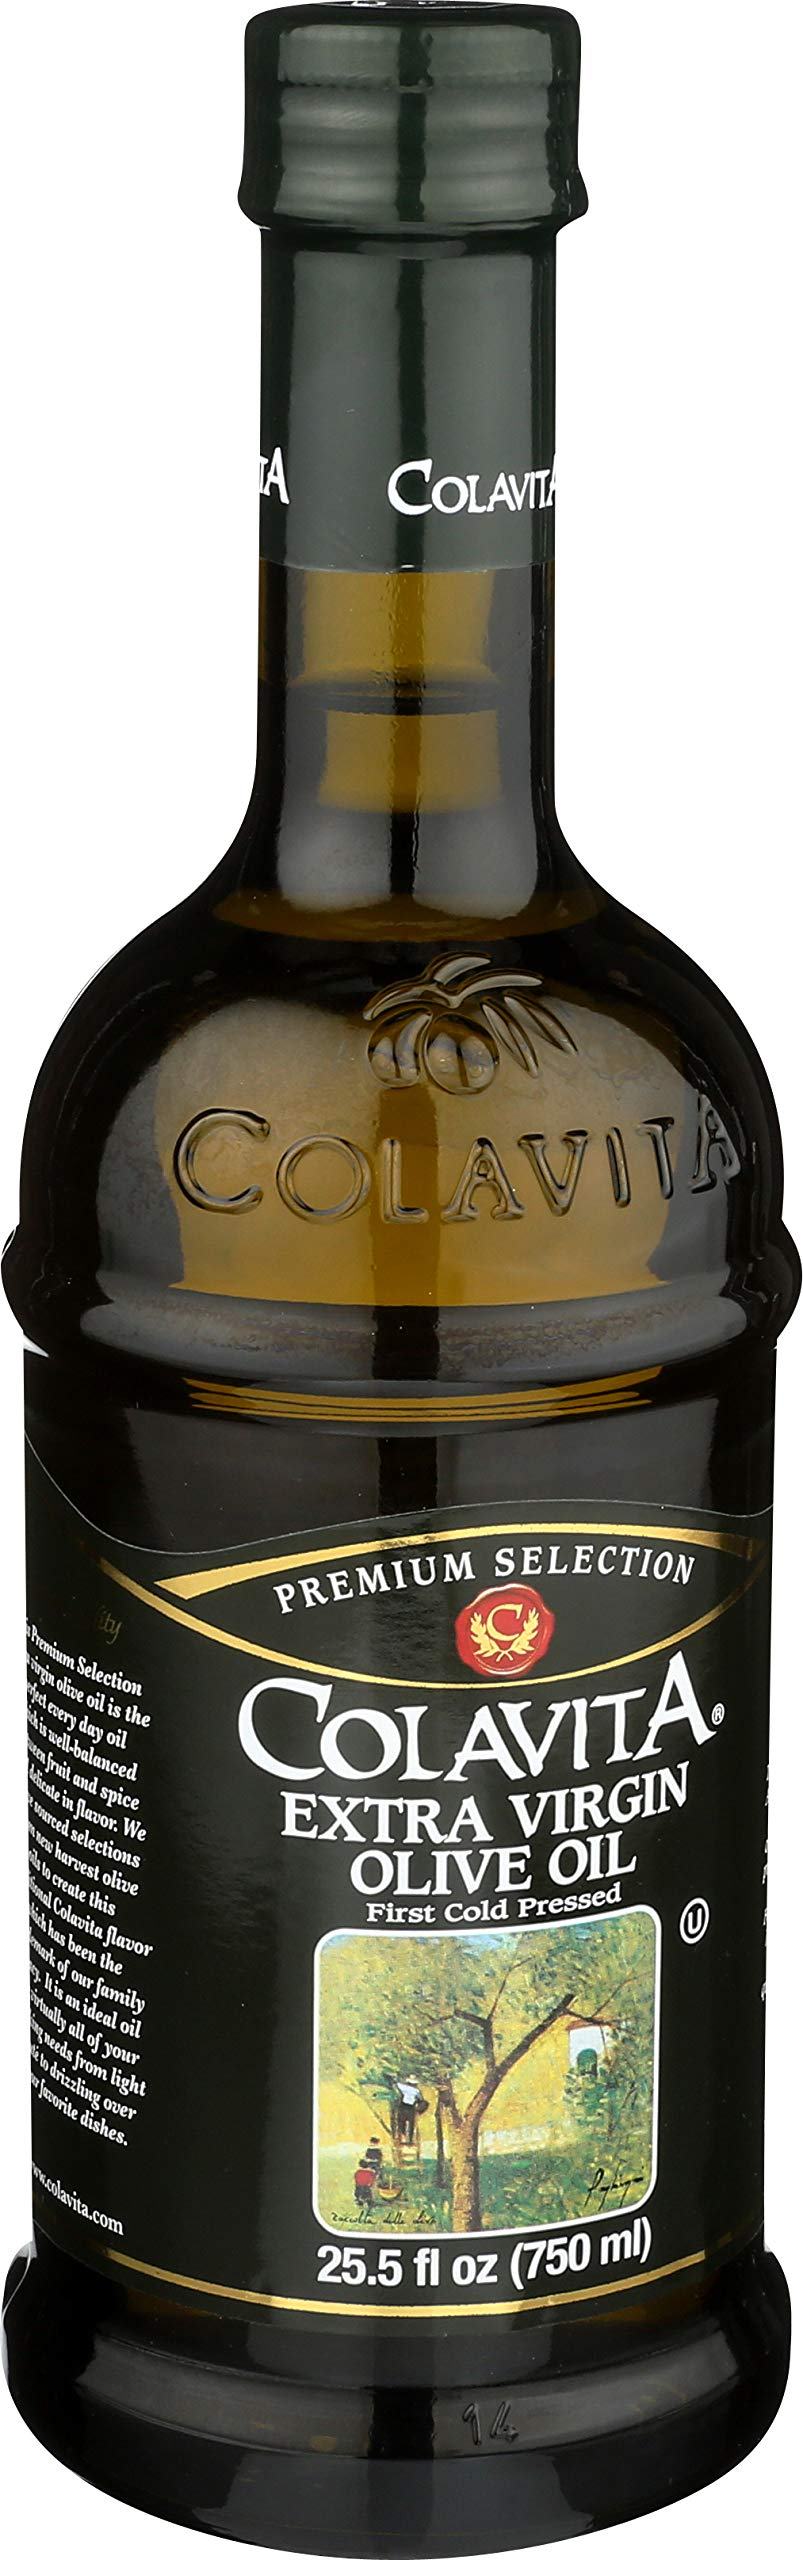 Colavita Extra Virgin Olive Oil, First Cold Pressed, 25.5 fl. oz., Glass Bottle by Colavita (Image #8)